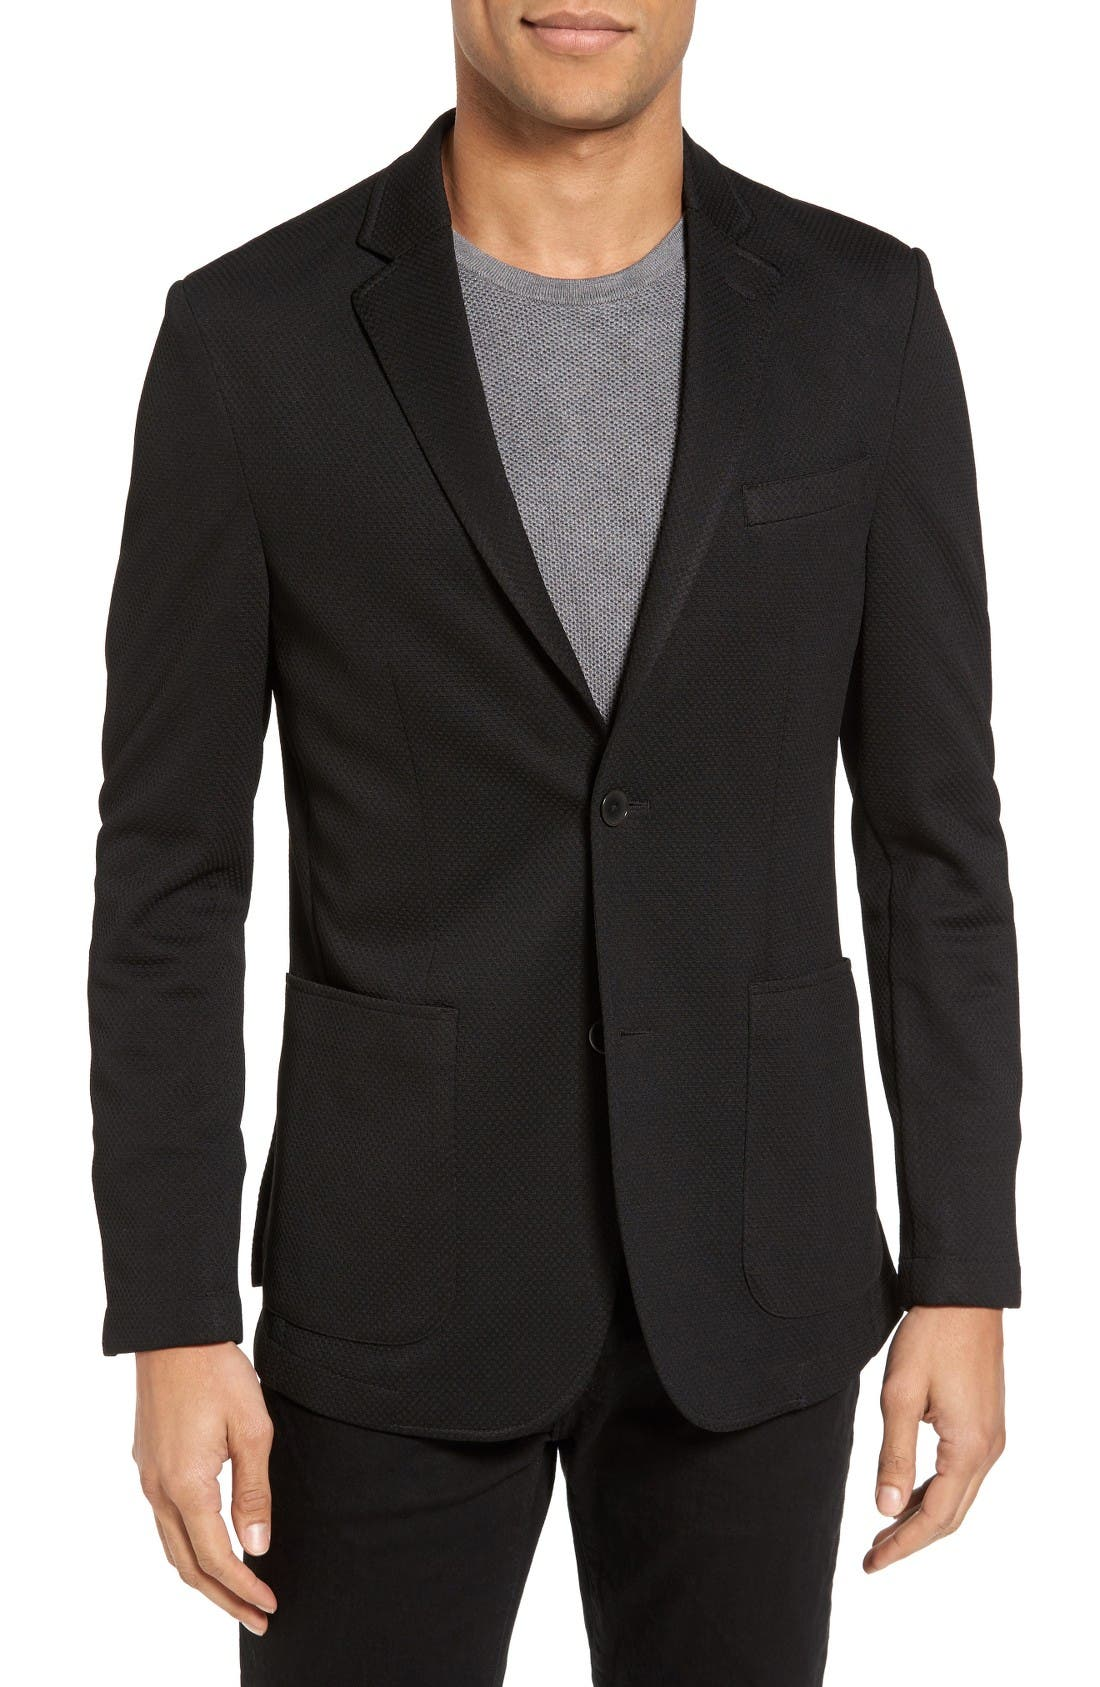 Alternate Image 1 Selected - Vince Camuto Slim Fit Stretch Knit Blazer